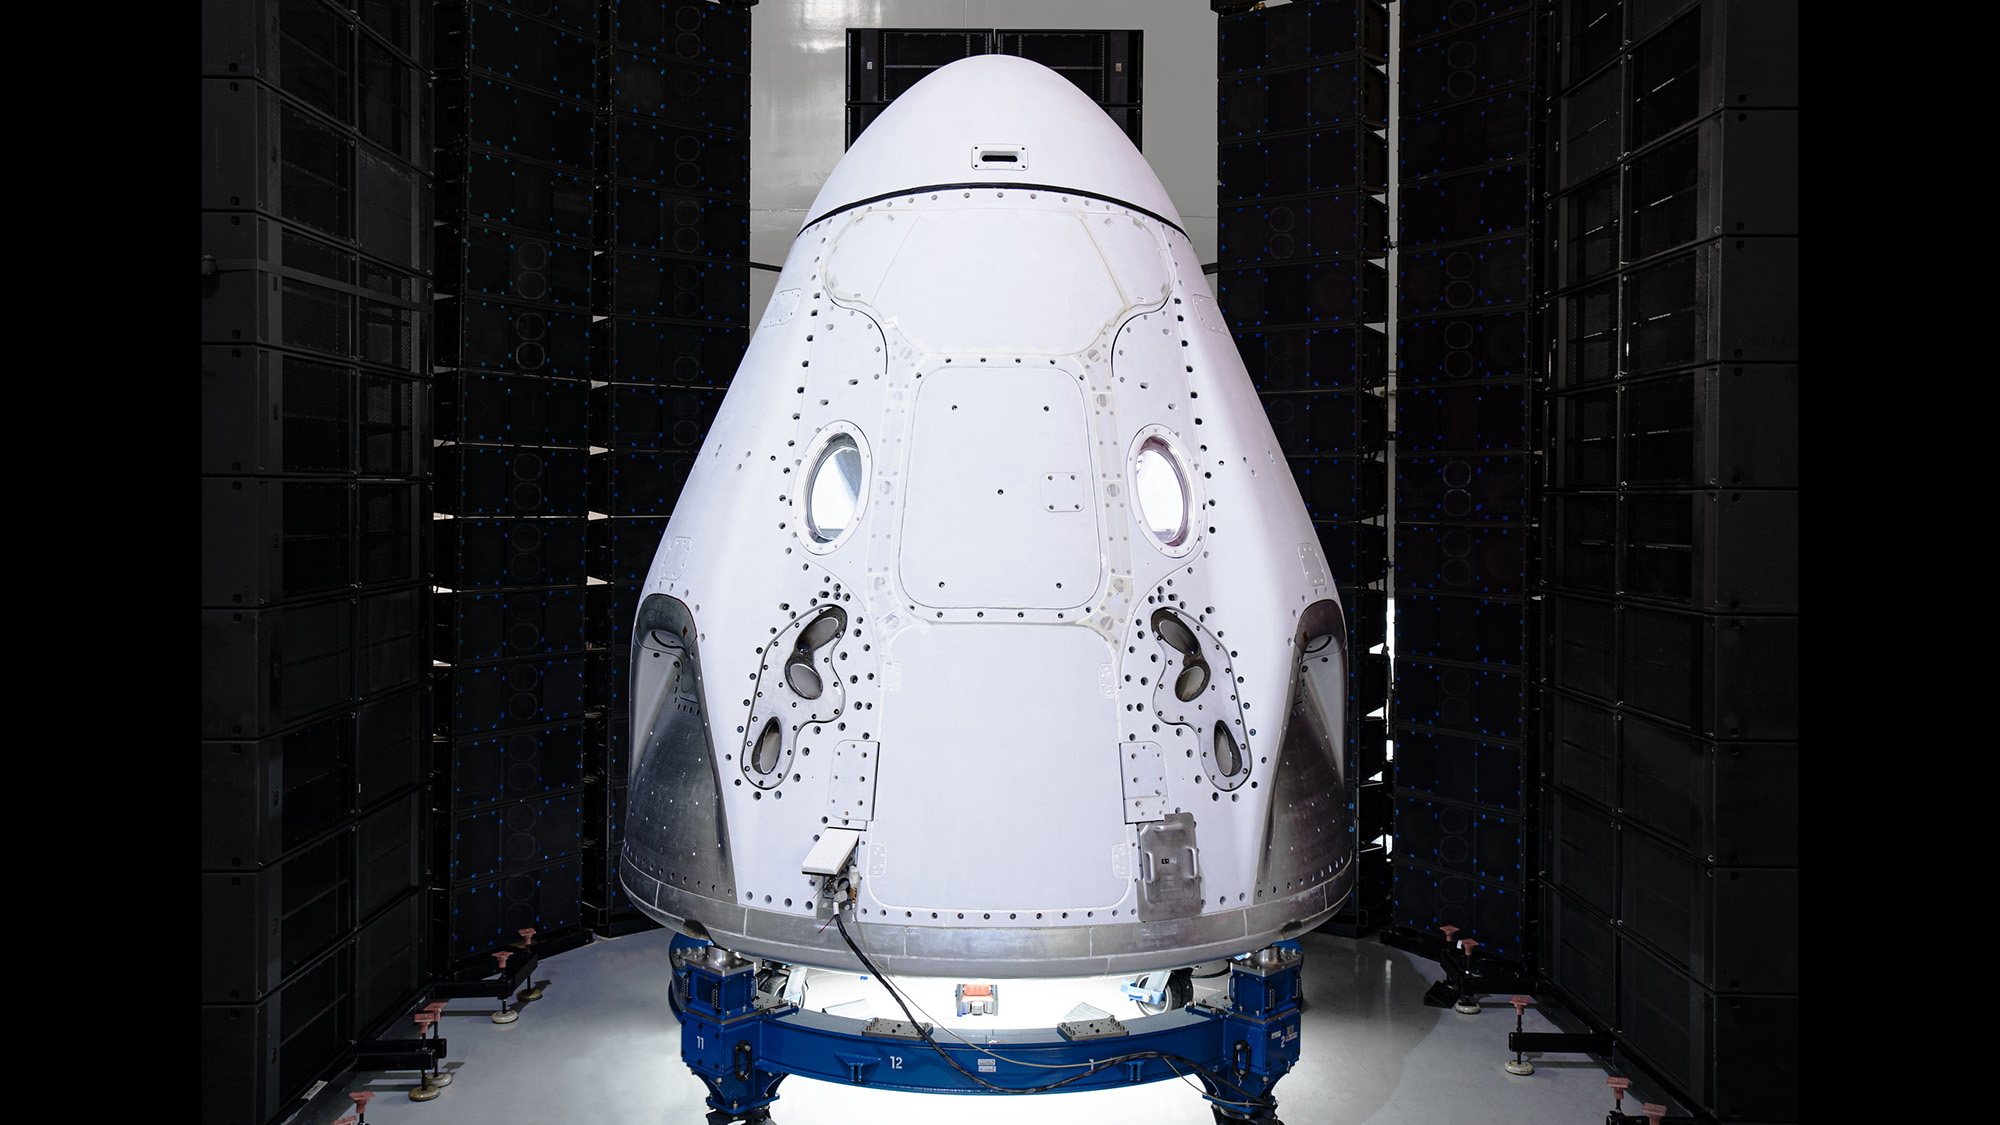 The astronauts on SpaceX's Crew Dragon launch have named their ...